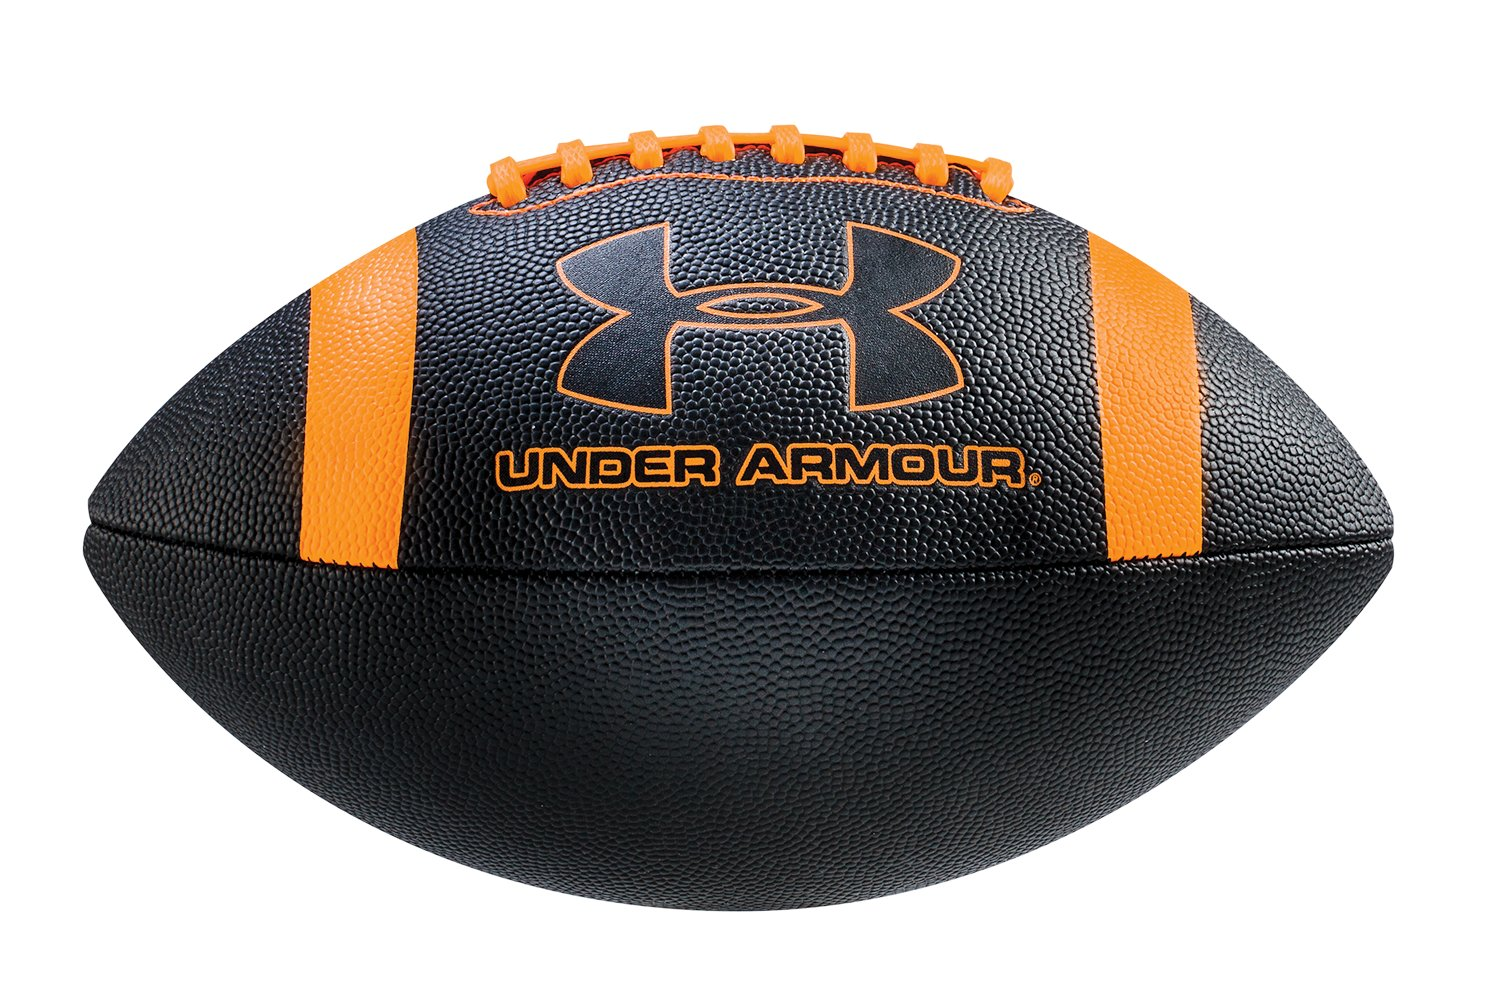 UA 295 Composite Football, Black